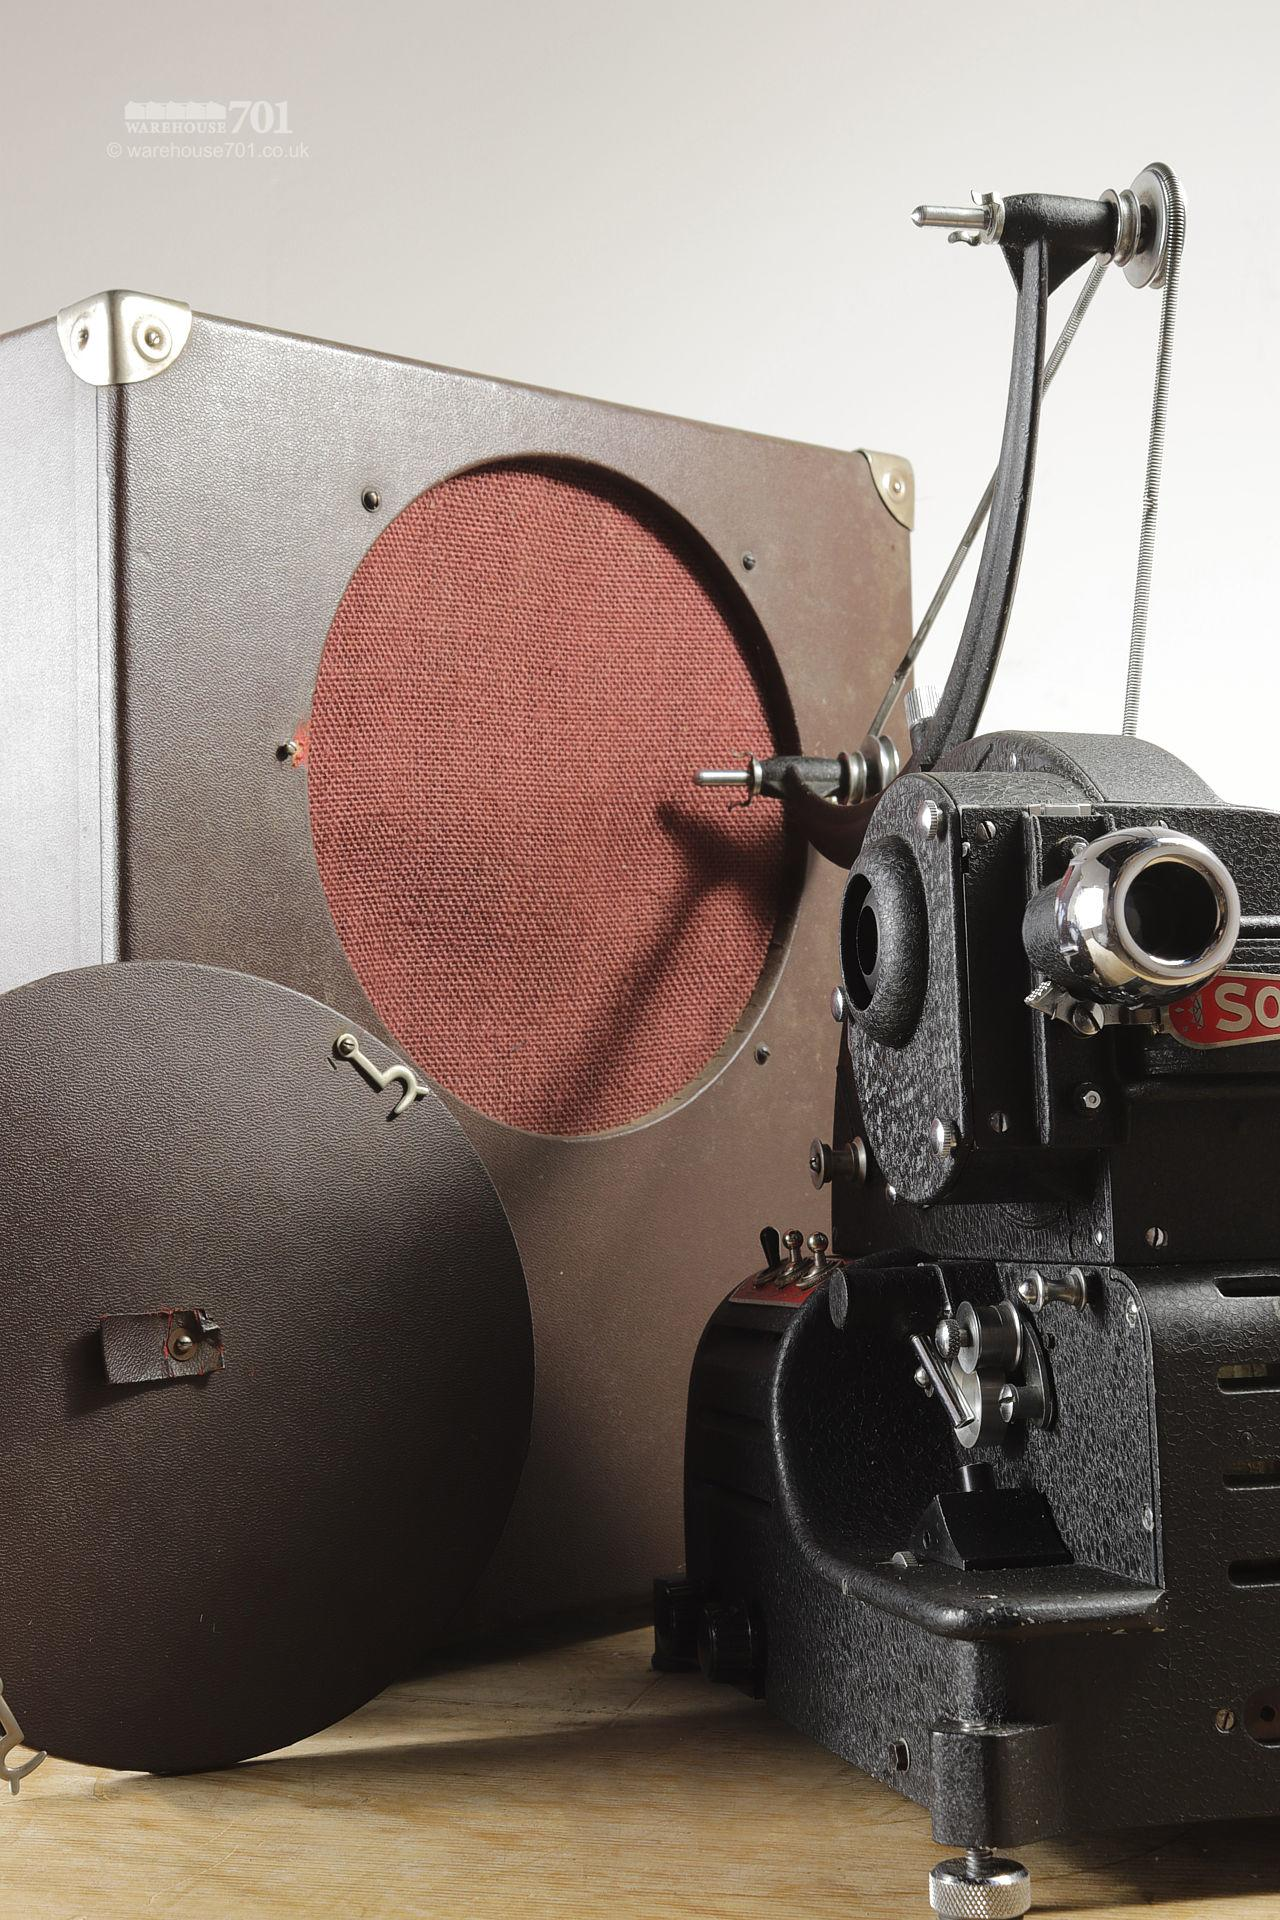 Pathescope 'Son' Vintage Film Projector #5